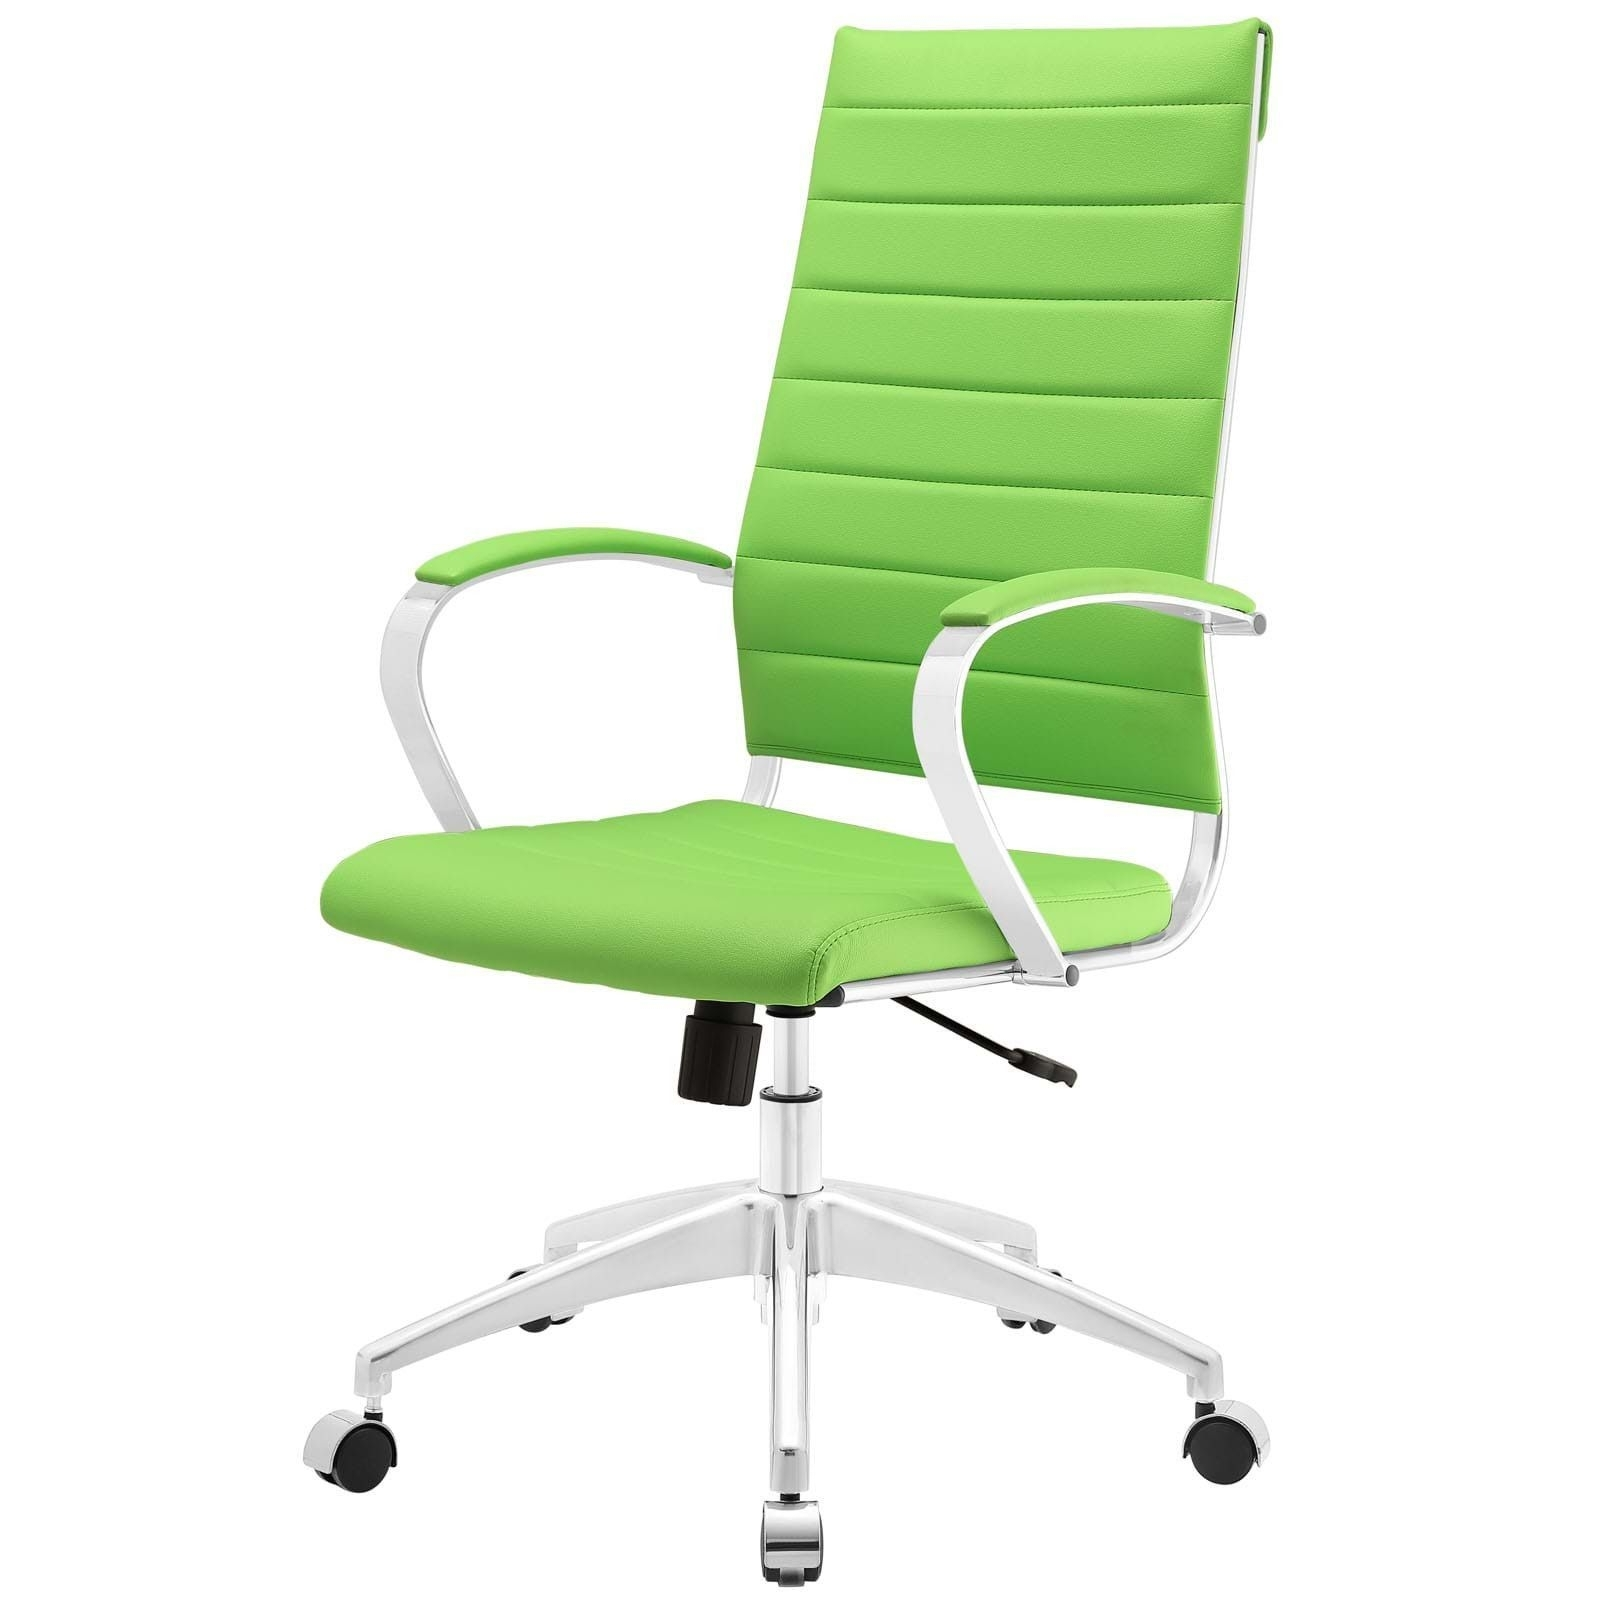 Executive Office Pertaining To Green Executive Office Chairs (View 10 of 20)